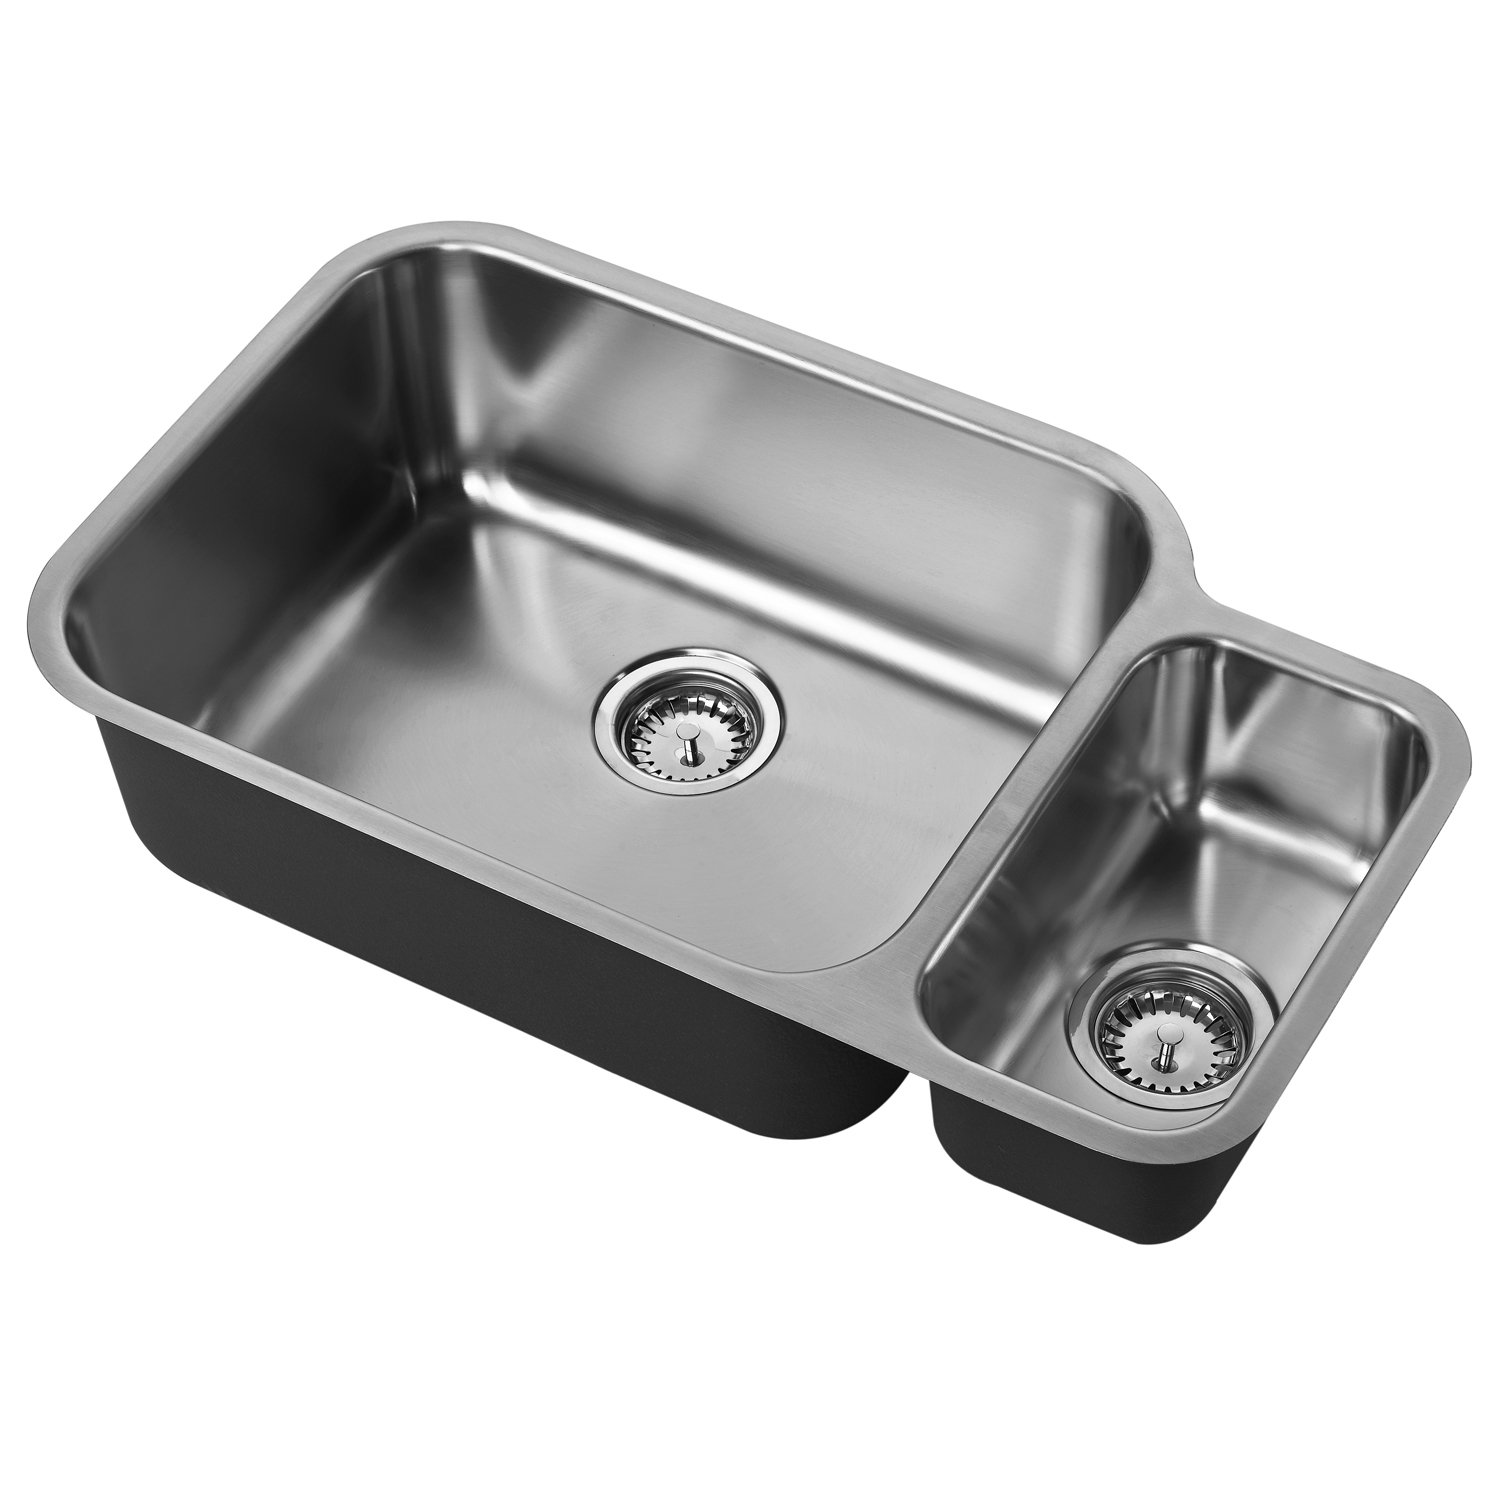 The 1810 Company Etroduo 781/450U 1.5 Bowl Kitchen Sink - Left Handed